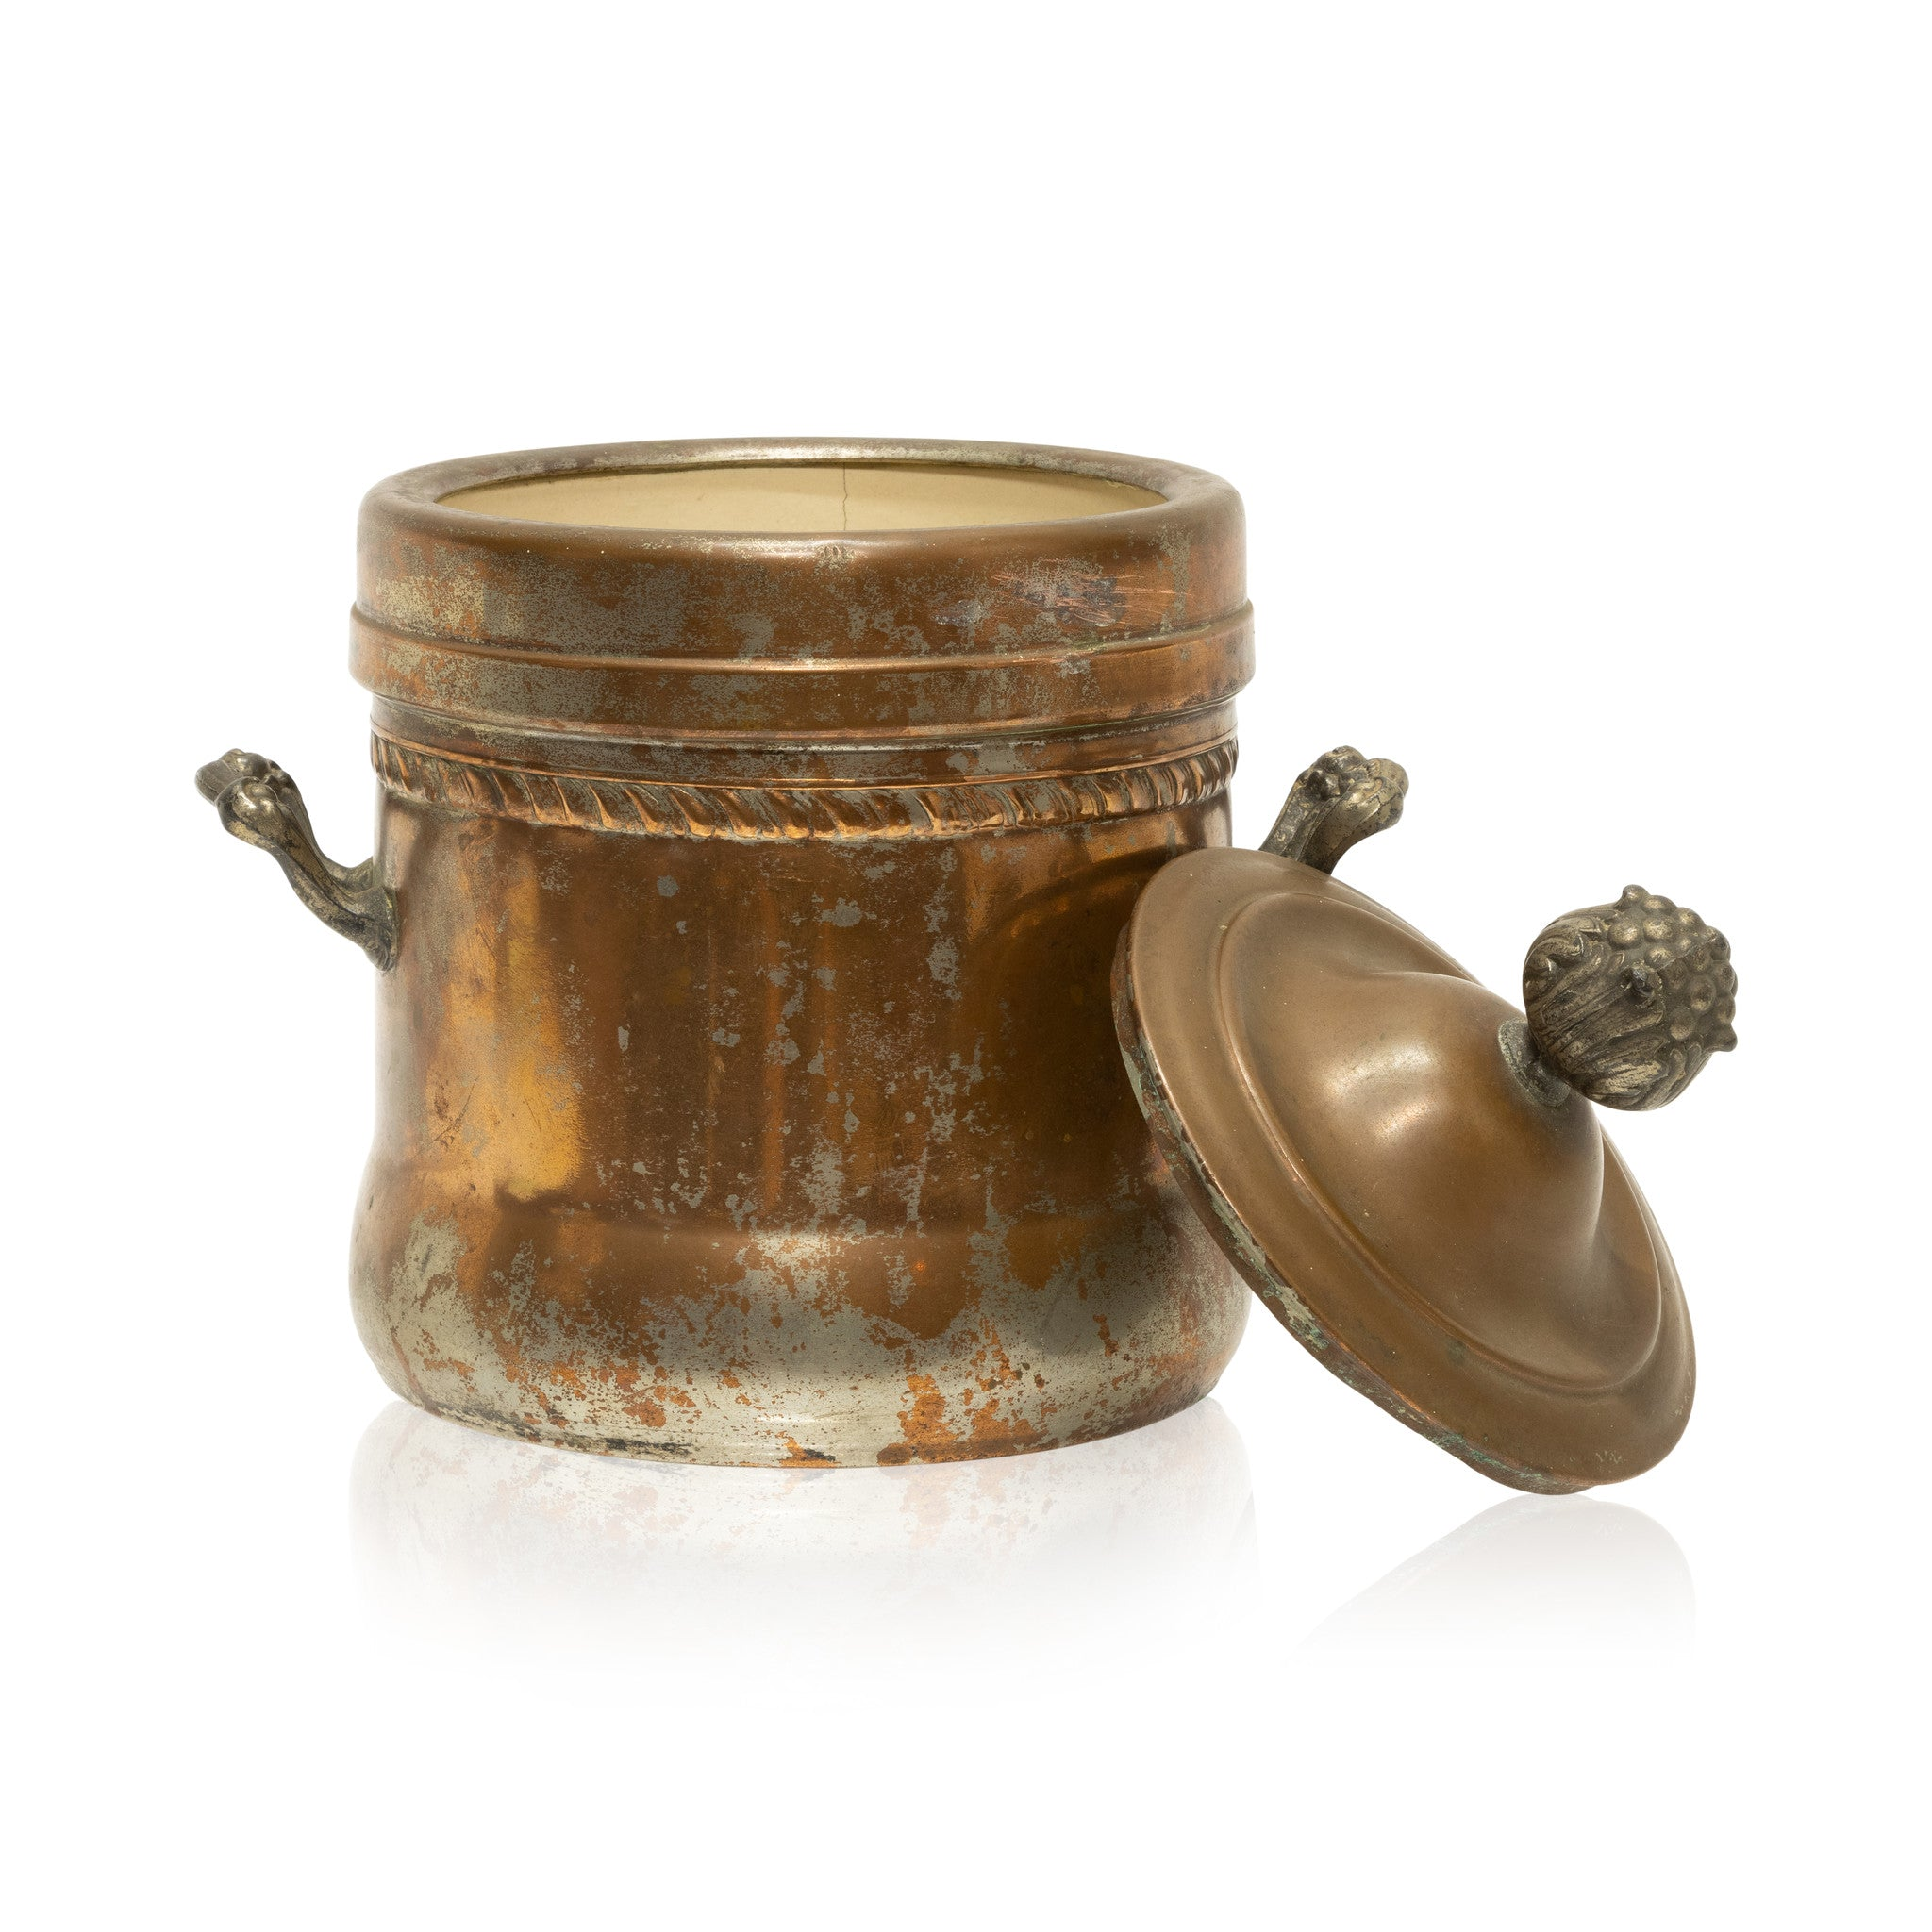 American Copper Glazed Crock copper, crocks, new item, pots